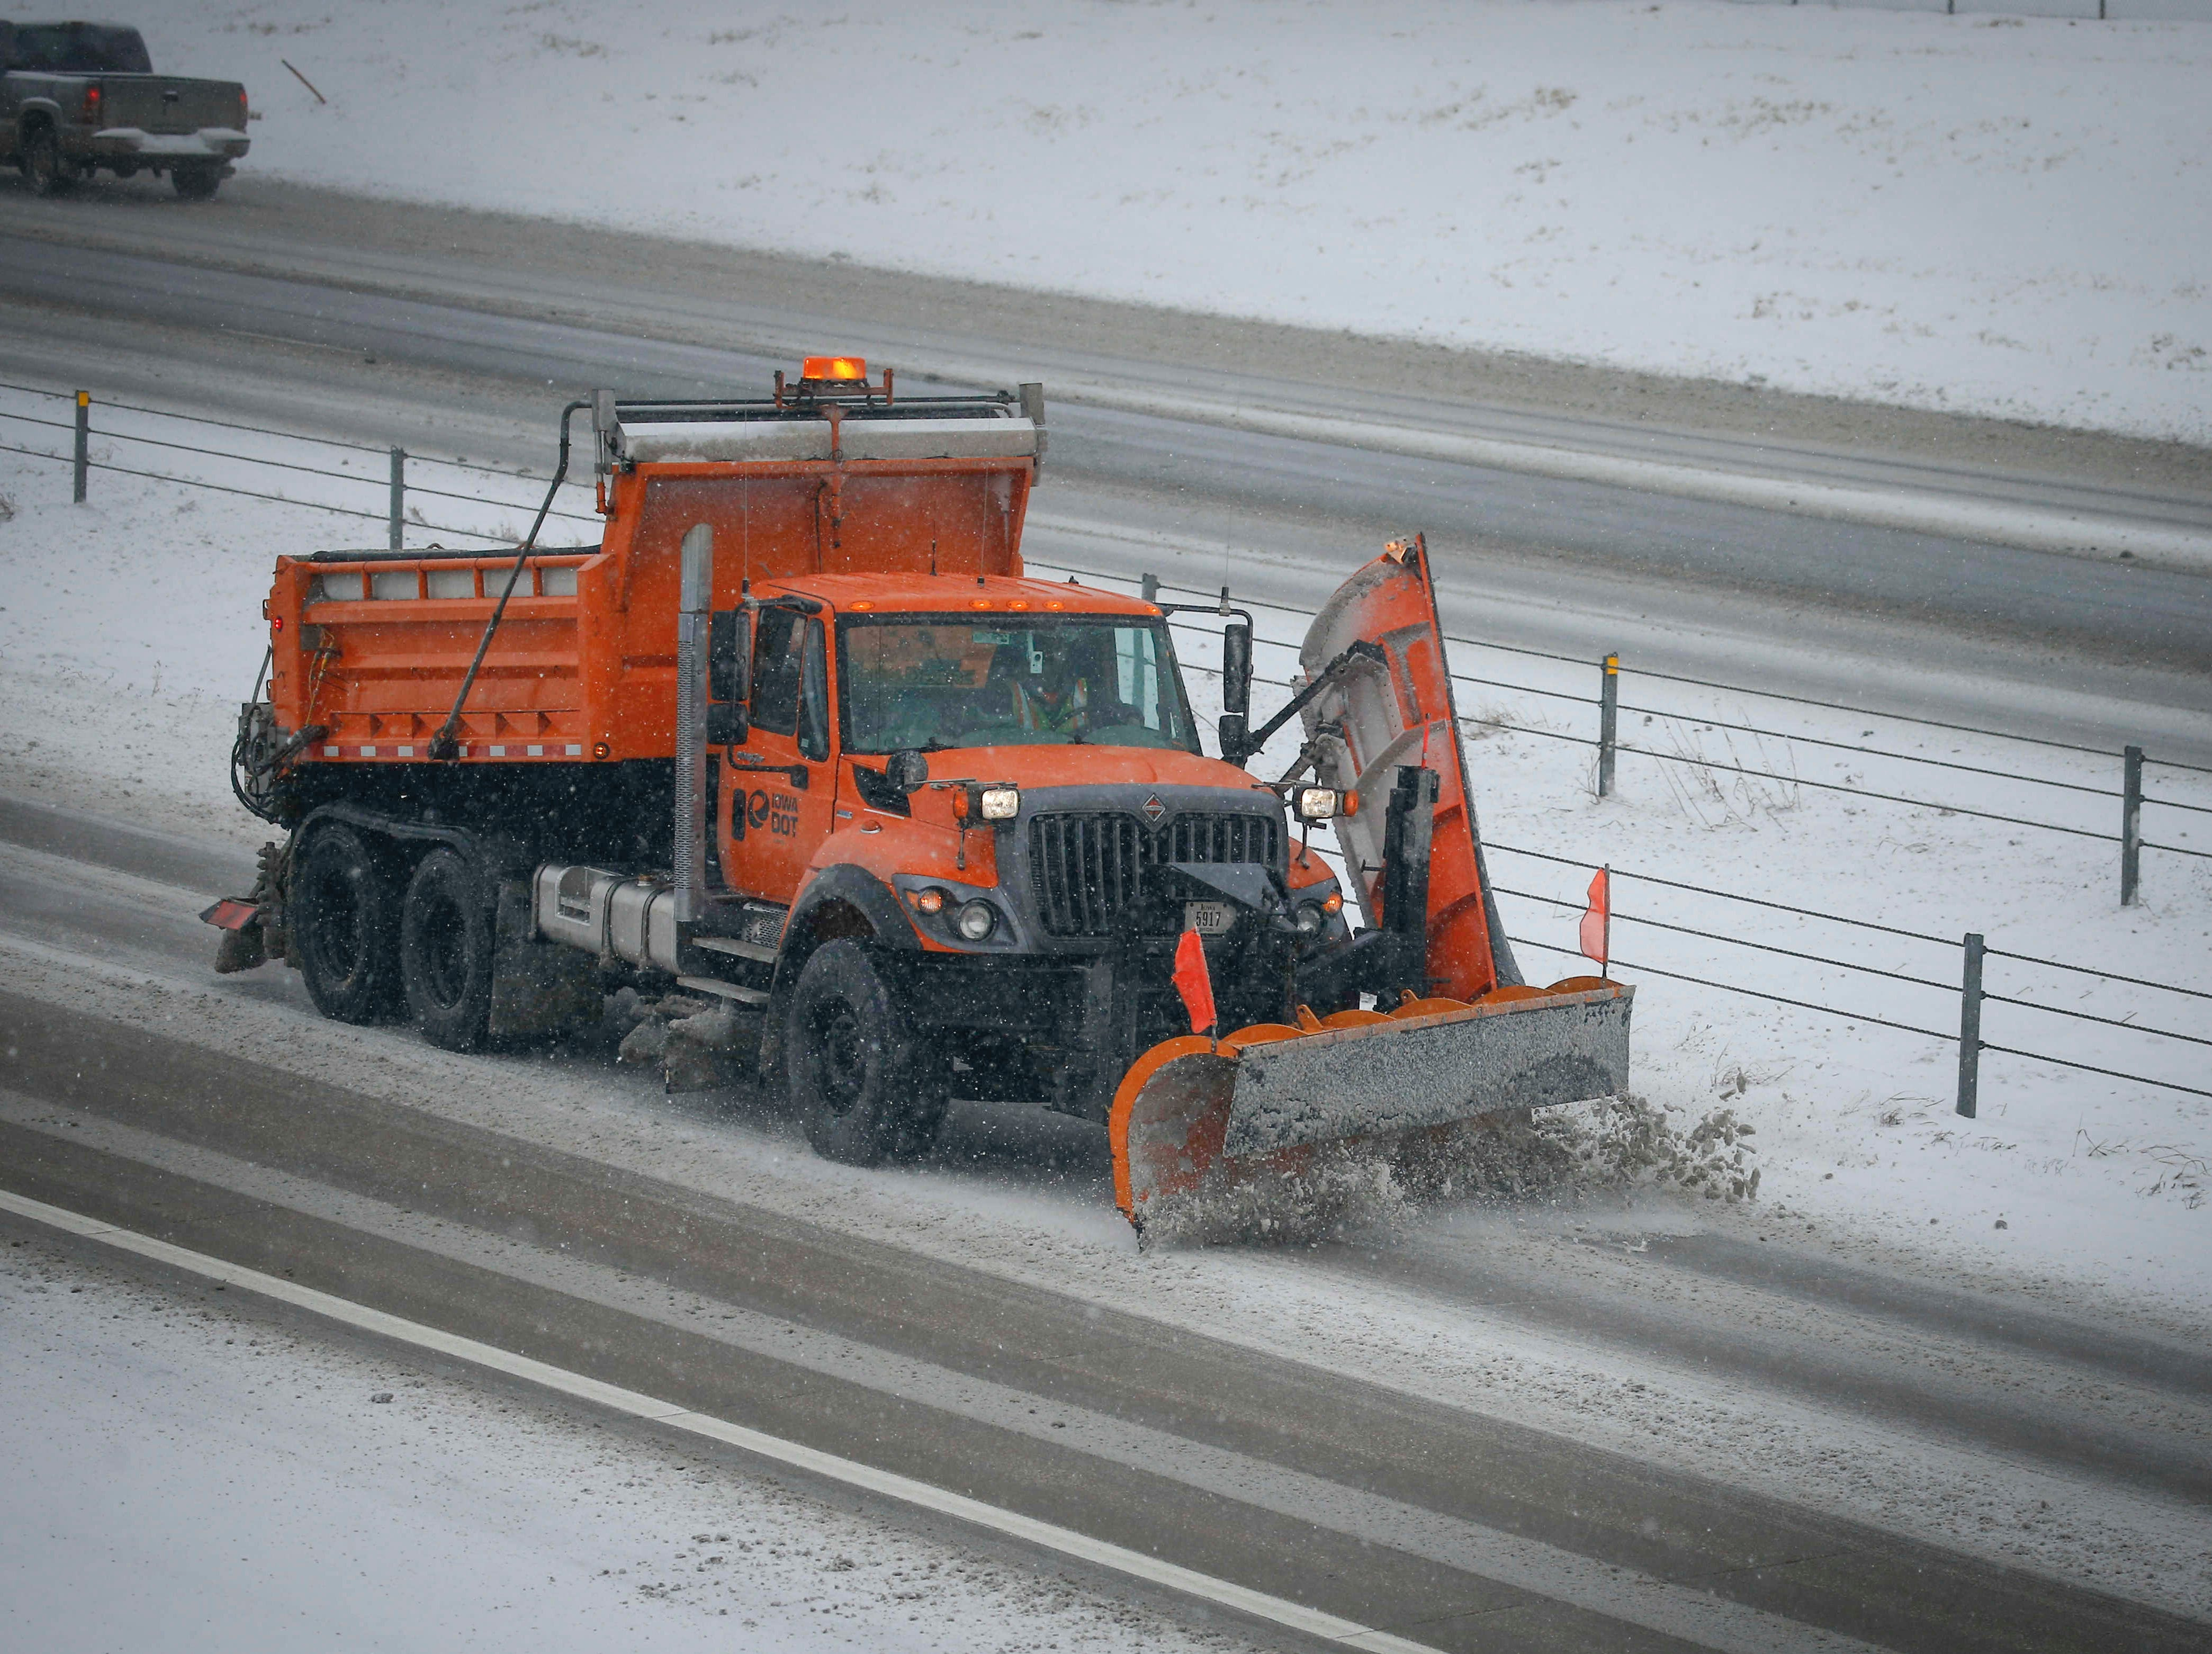 An Iowa Department of Transportation snow plow clears snow off a westbound lane of Interstate 80 in West Des Moines on Monday, Feb. 11, 2019.